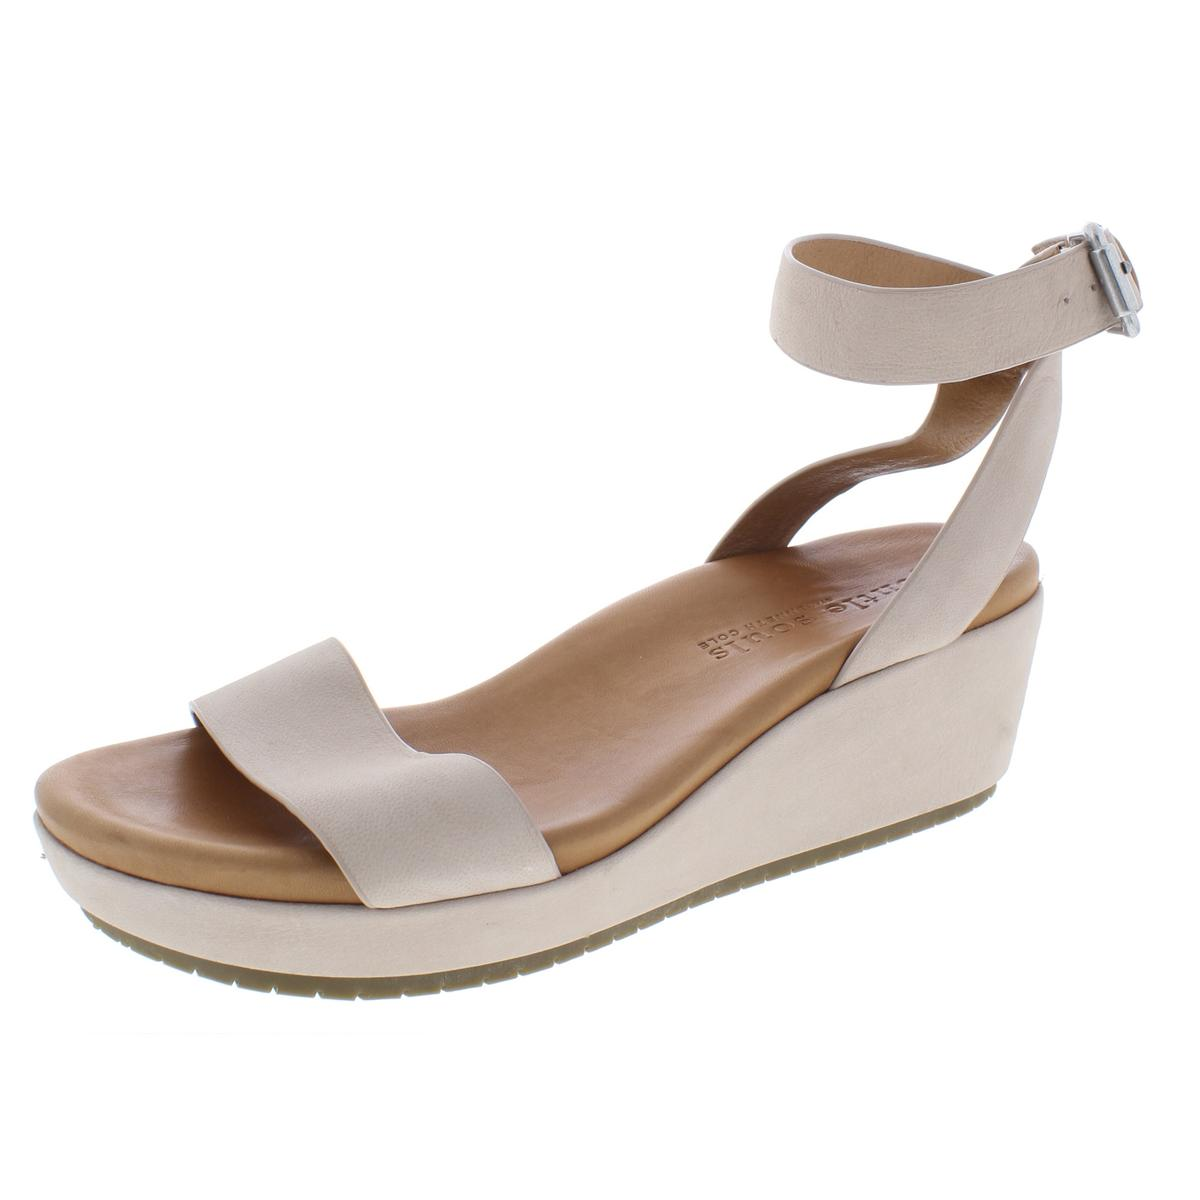 669a689be512 Details about Gentle Souls by Kenneth Cole Womens Morrie Wedge Sandals 7.5  Medium (B